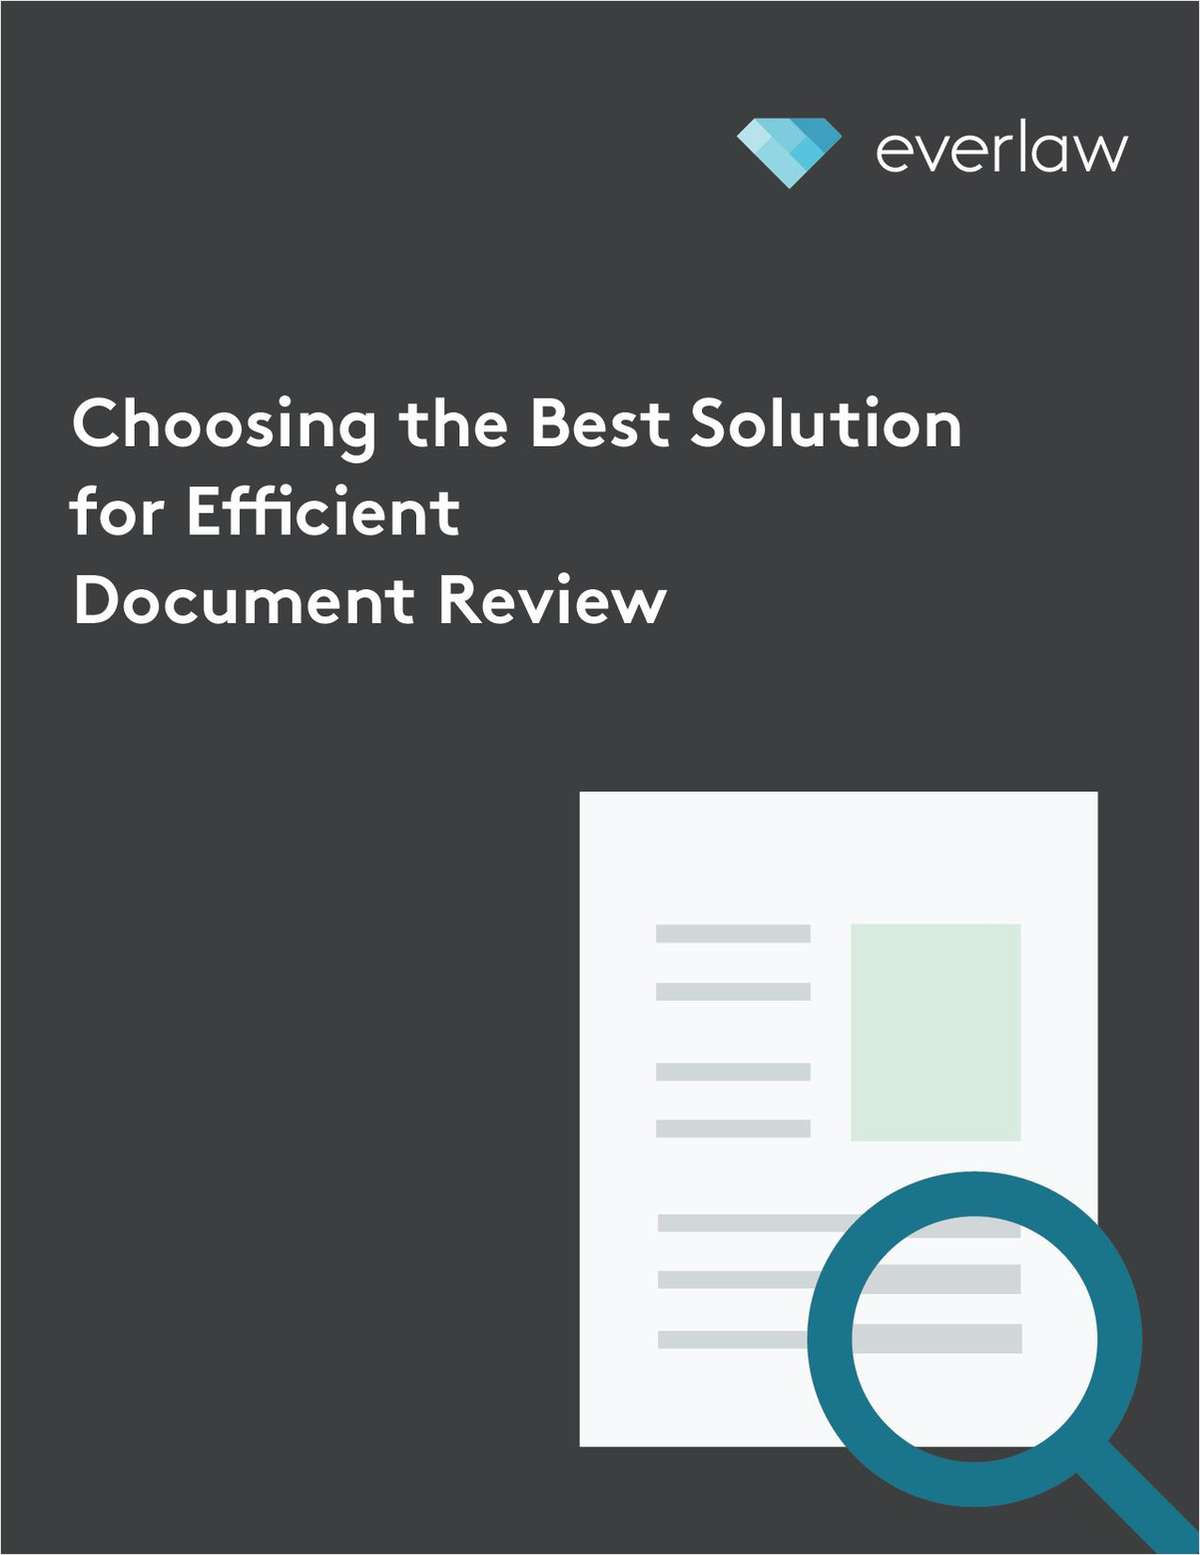 Choosing the Best Solution for Efficient Document Review